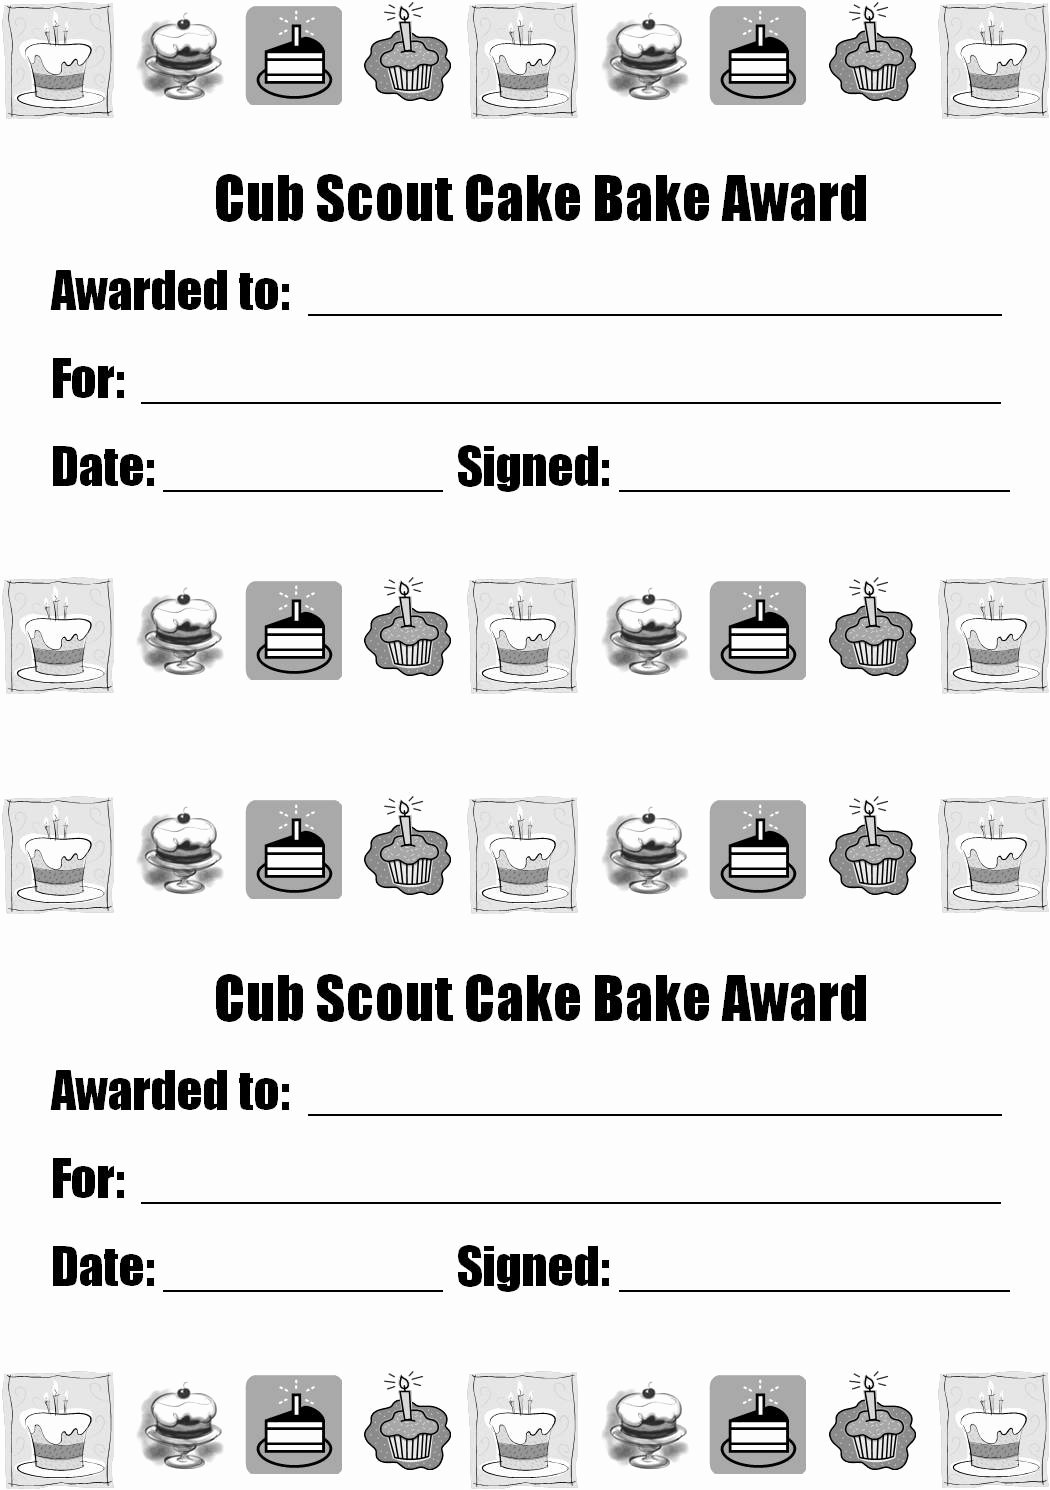 Boy Scout Certificates Templates Unique Strong Armor Cub Scouts Blue & Gold Dinner Cake Bake Awards